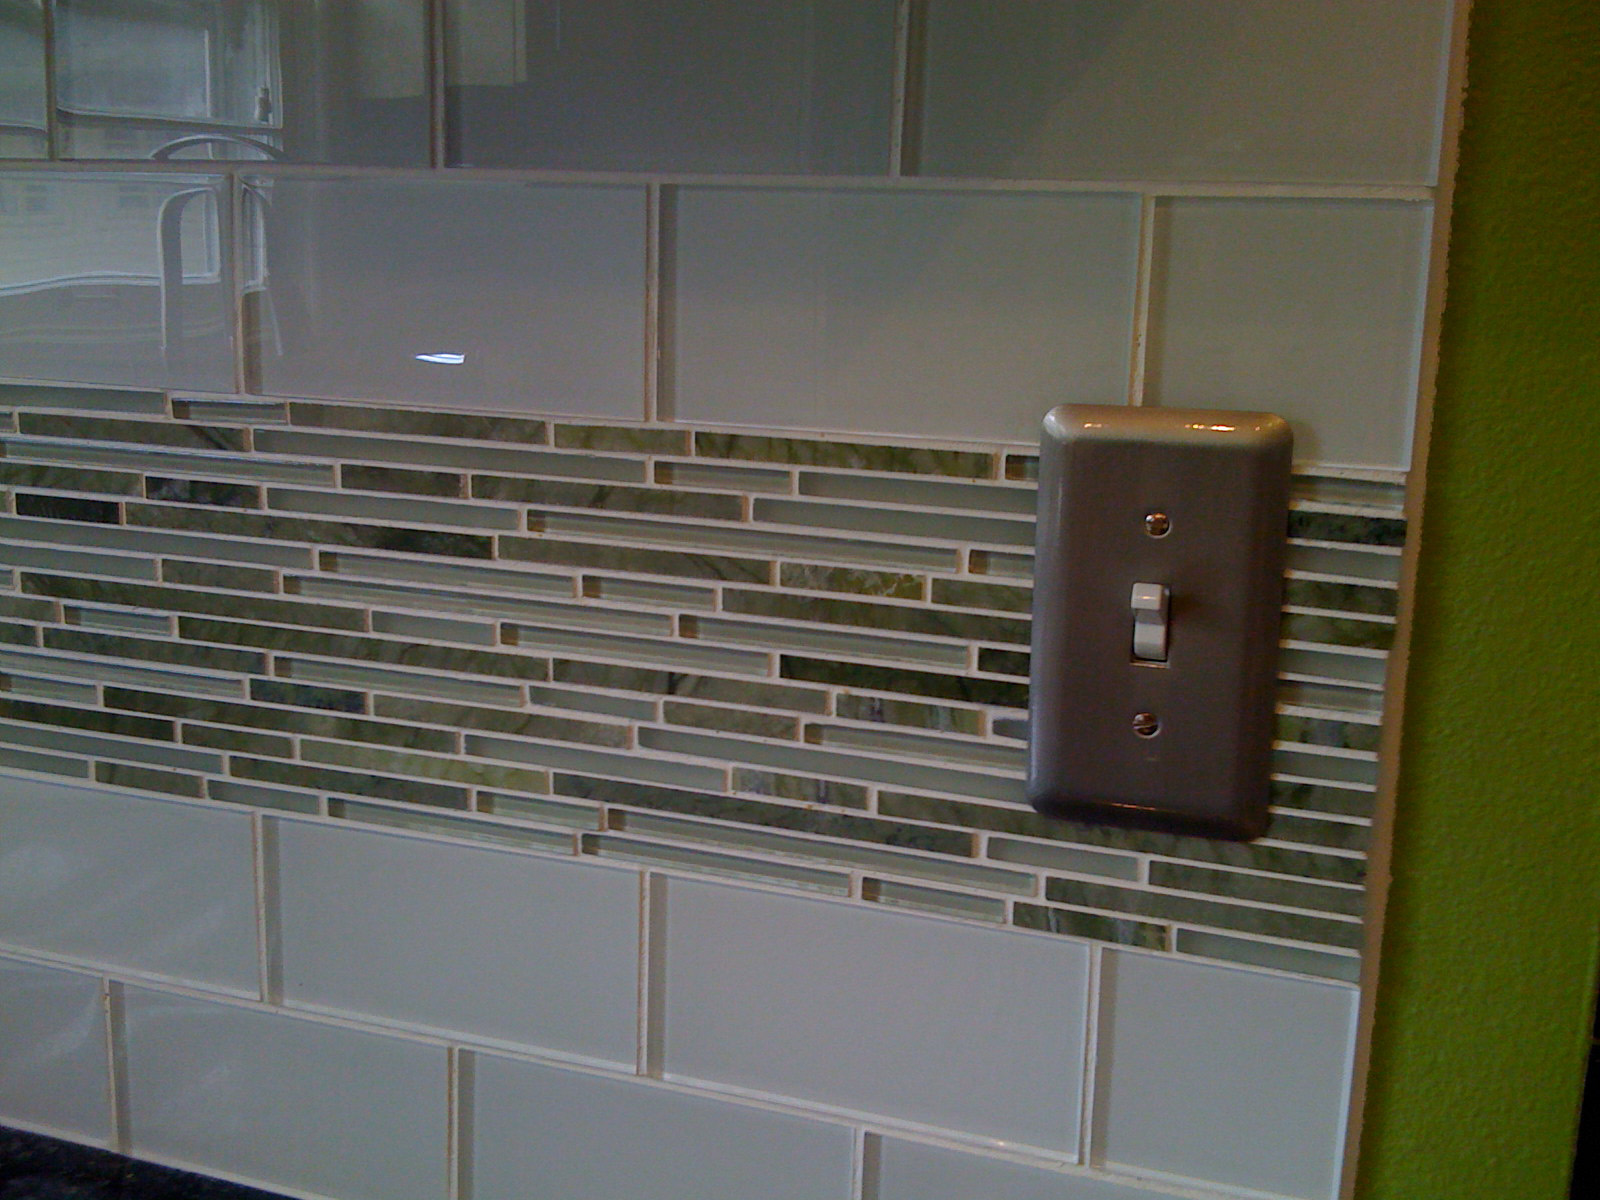 cat 1 glass tile backsplash kitchen This modern kitchen called for a detailed backsplash